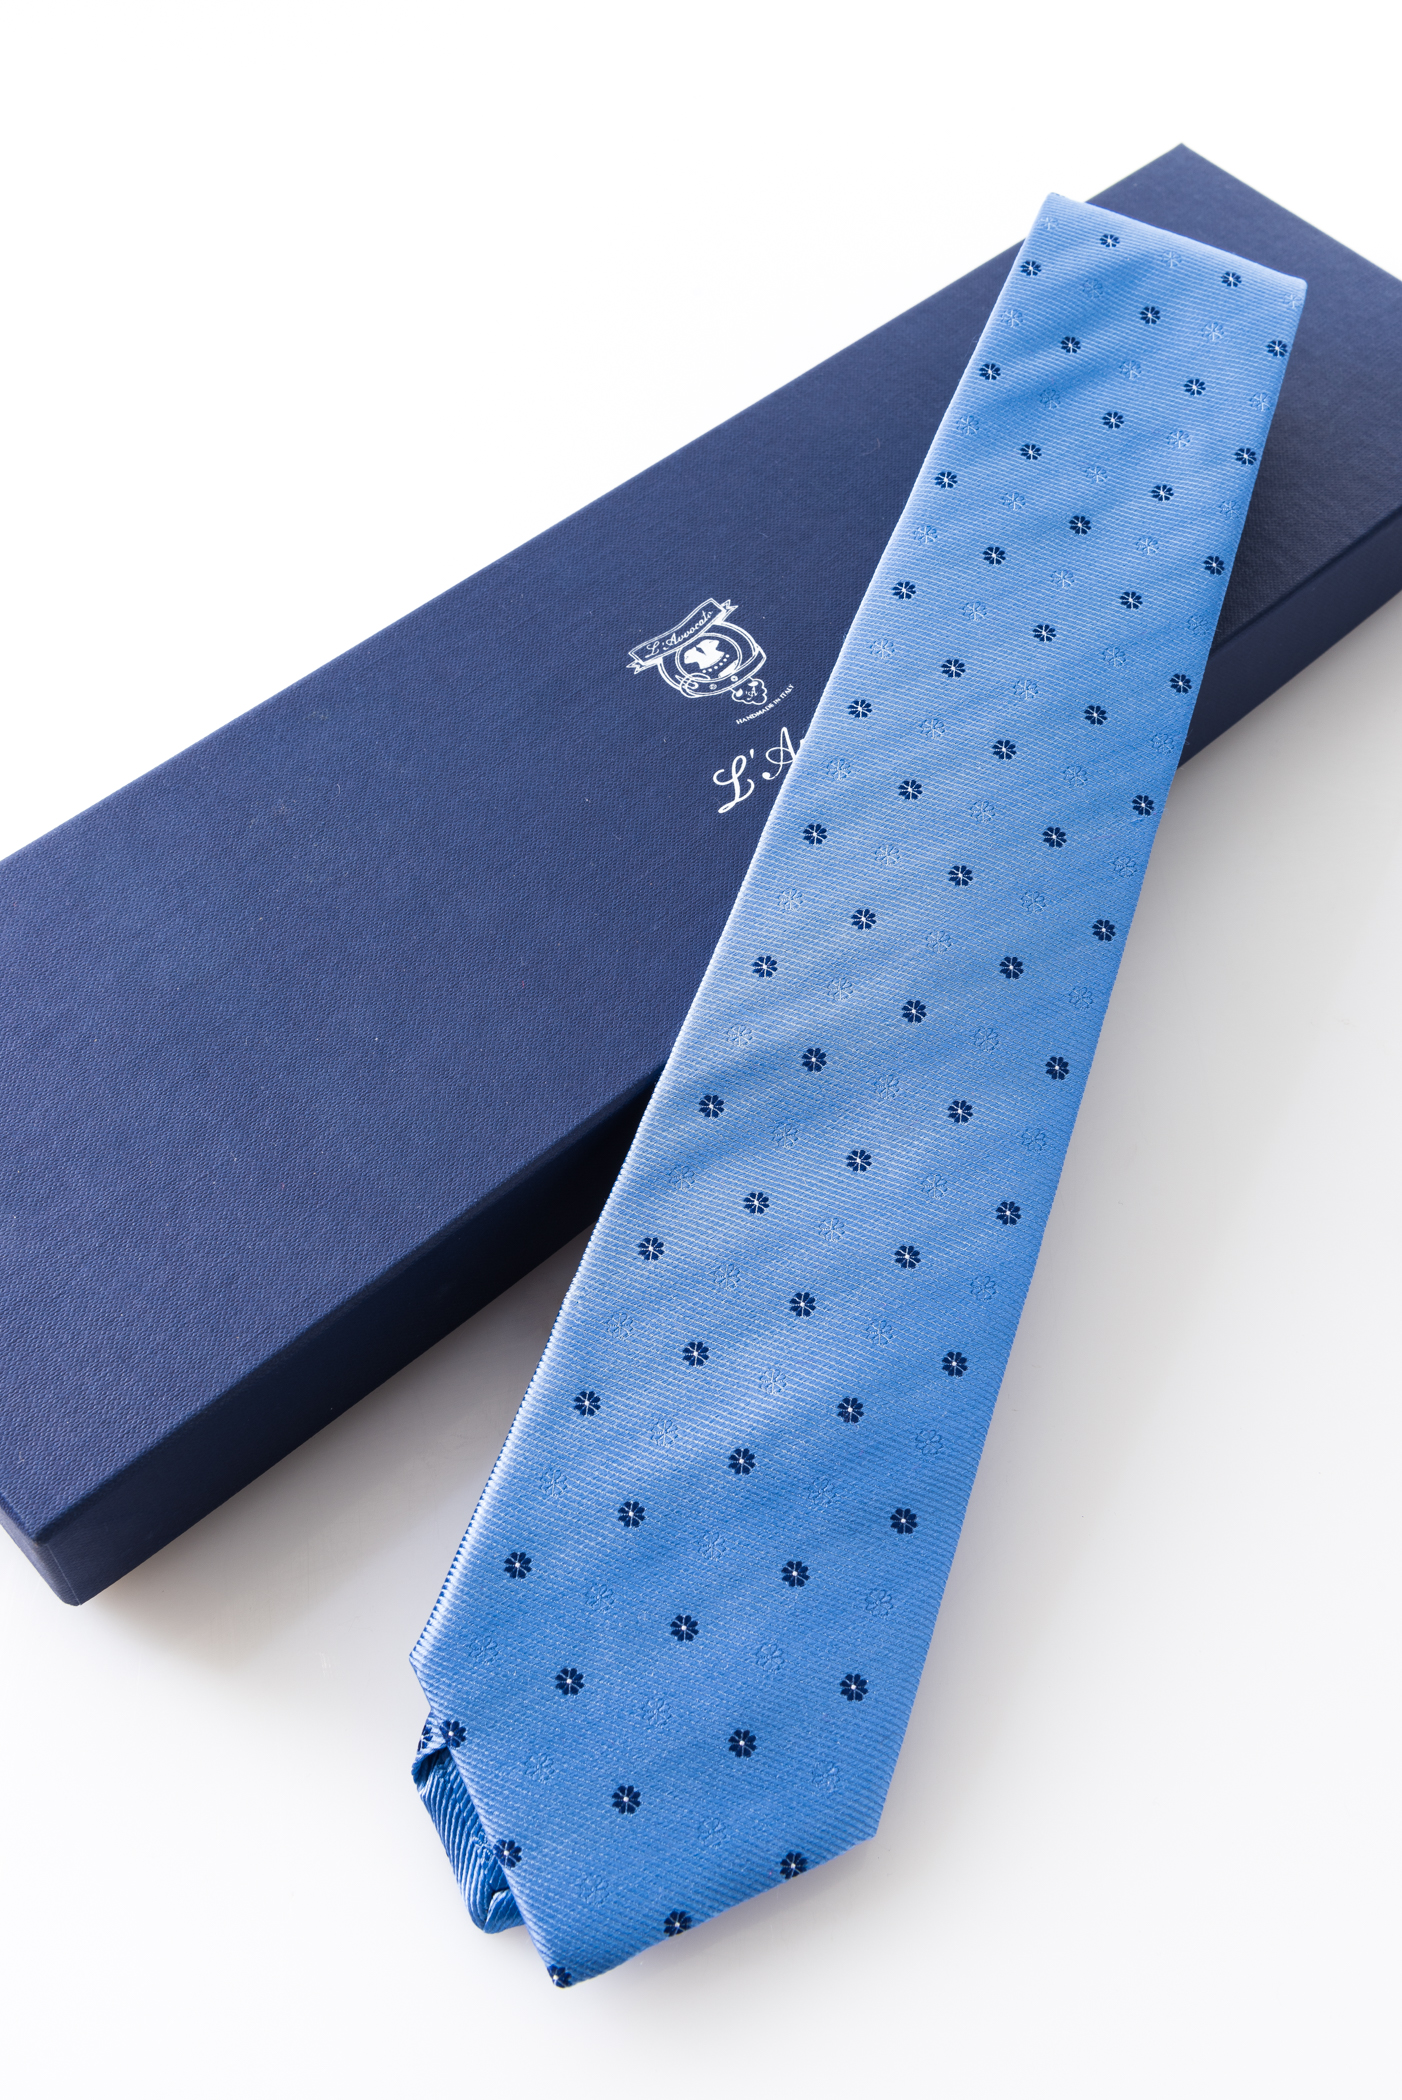 Lined Tie – Urbano Celeste – and its packaging